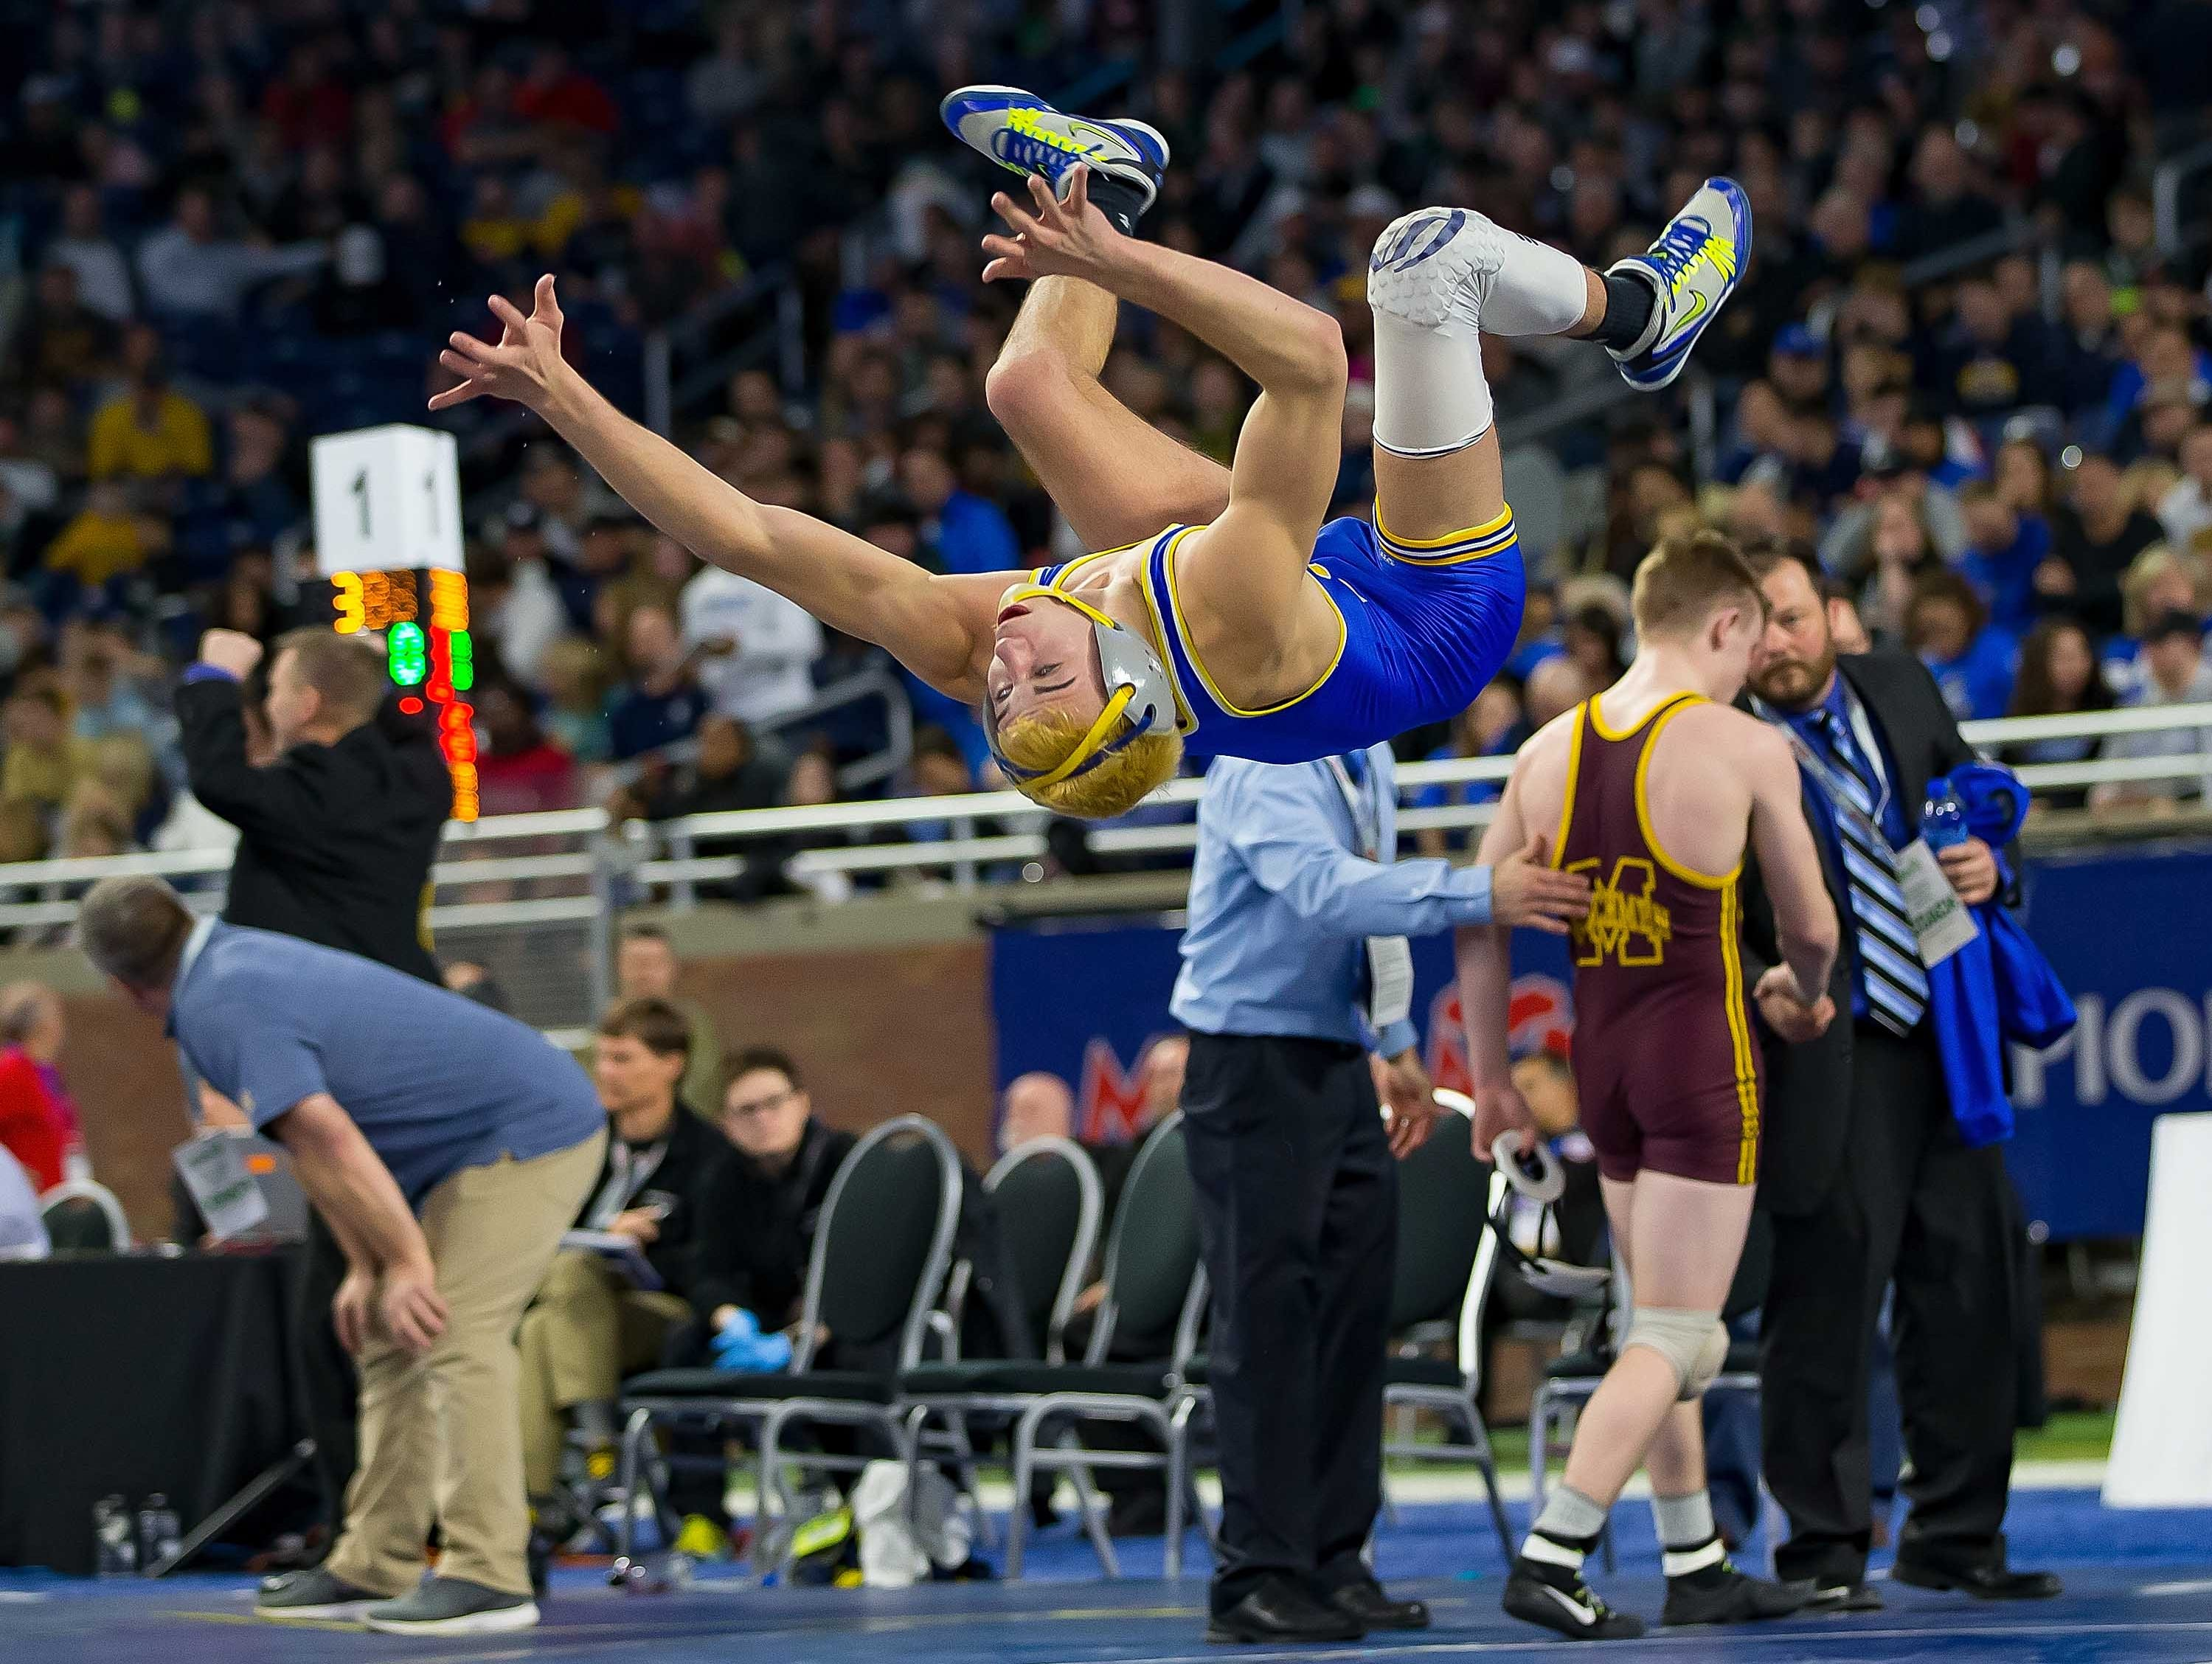 Jamison Ward of Carson City-Crystal does a back-flip after defeating Jacob Shelby of Manchester during their 130-pound Division 4 championship match.